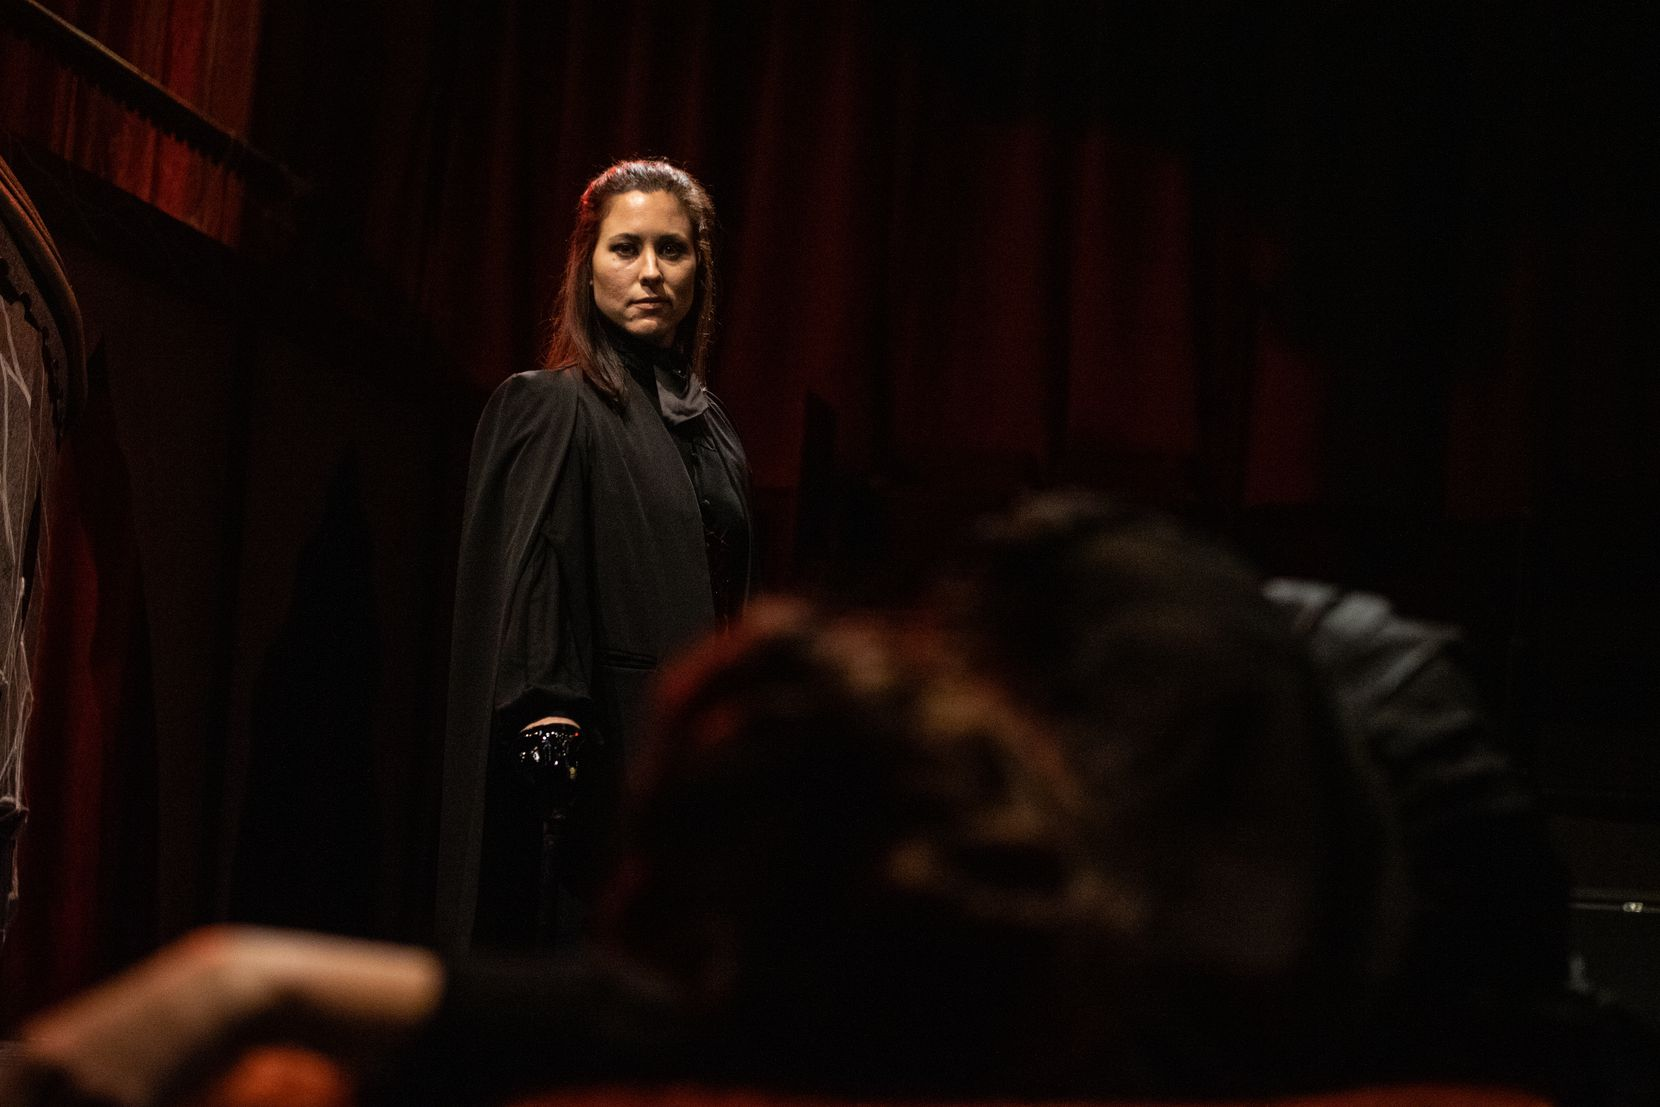 Allison Pistorius as she appeared in Dracula at Theatre Three, taken Oct. 2, 2019.